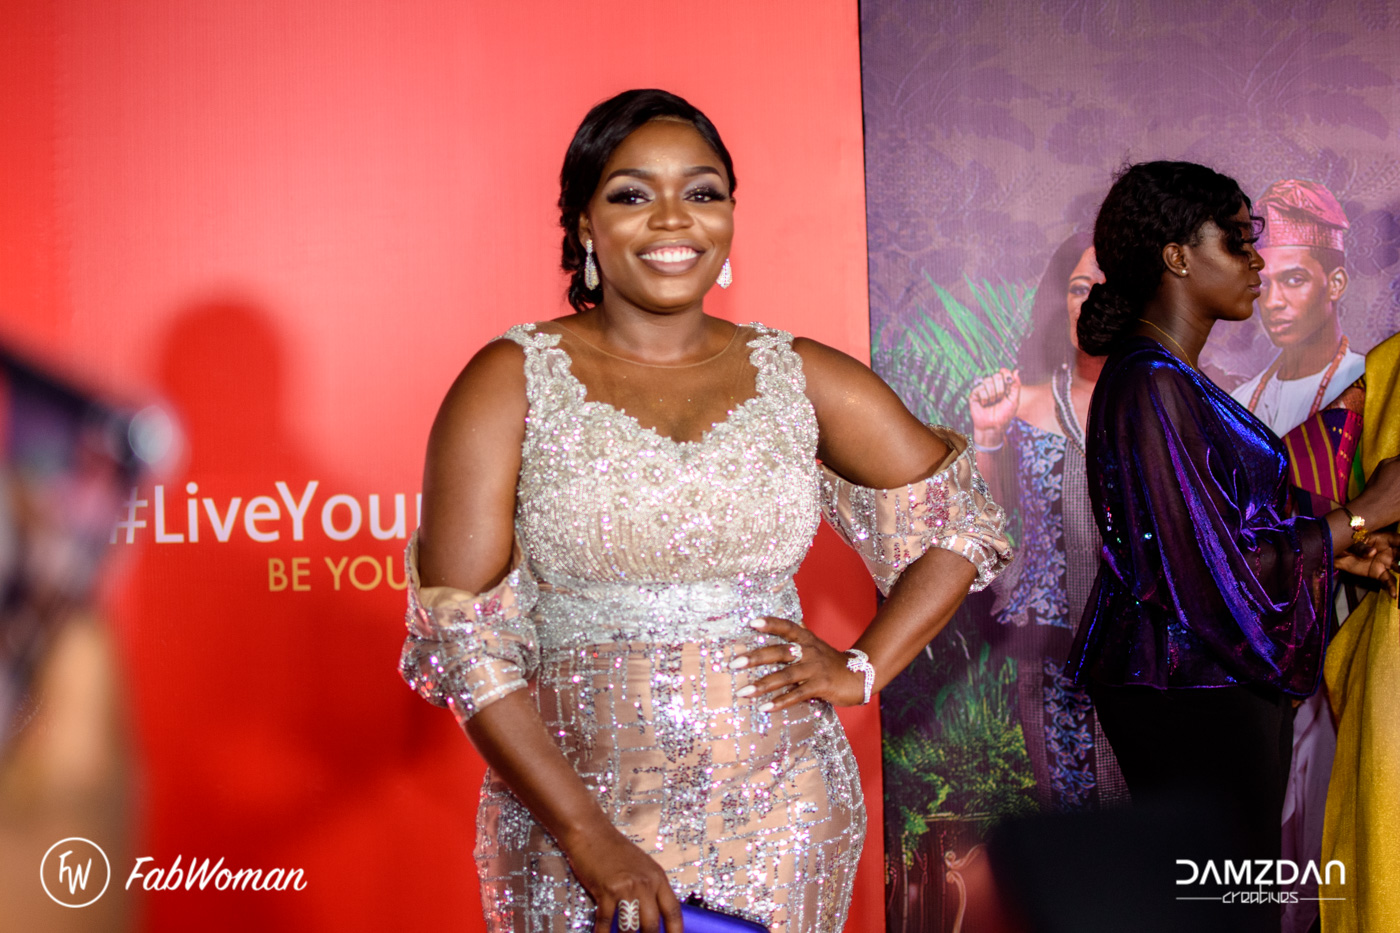 The Best-Dressed Celebrities We Spotted At 'The Bling Lagosians' Movie Premiere